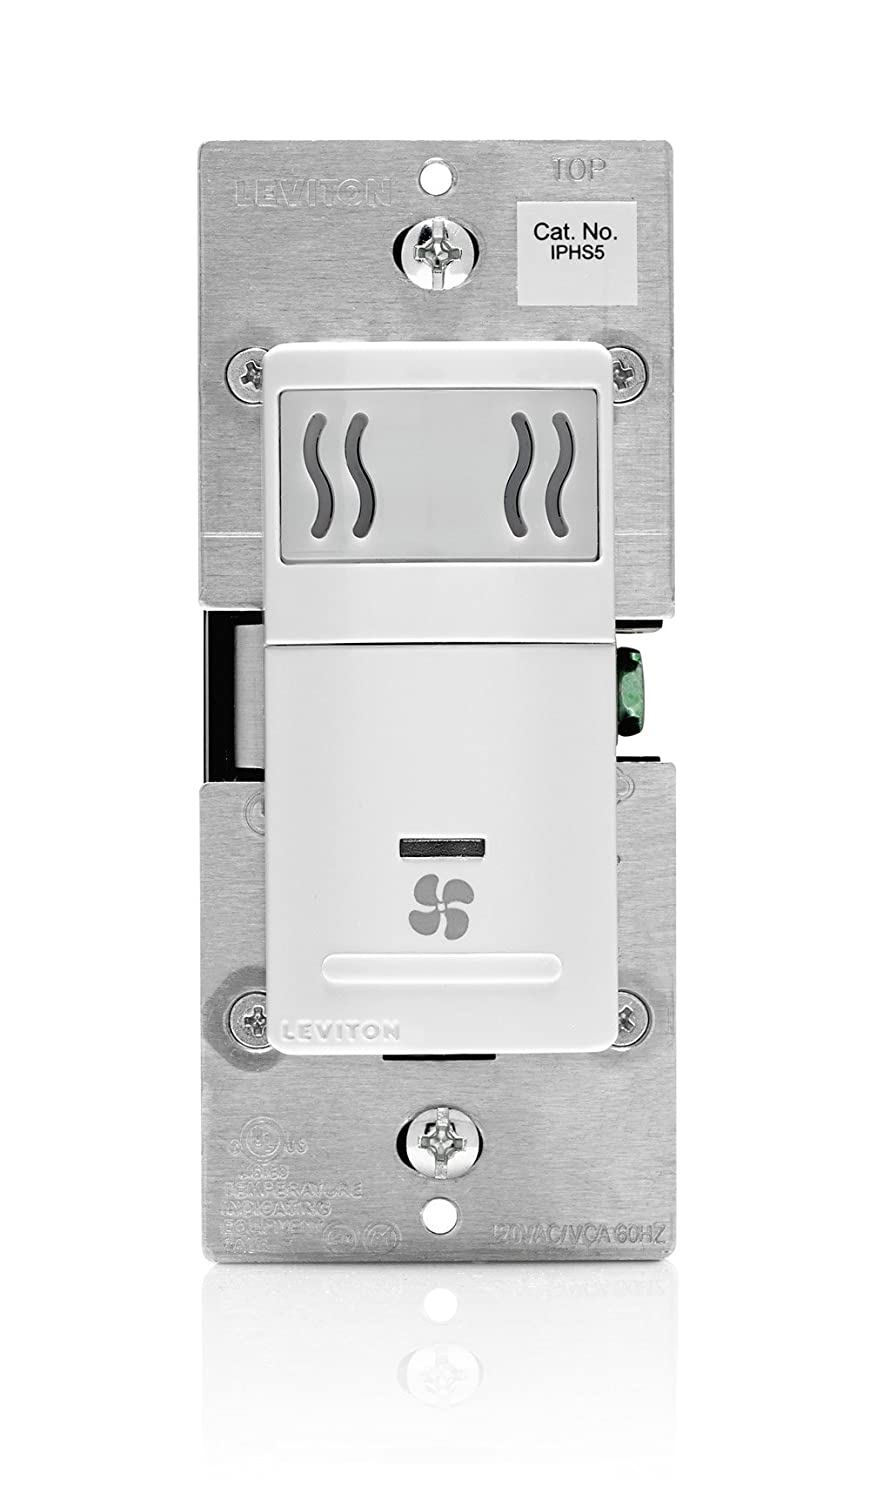 Leviton Iphs5 1lw Humidity Sensor And Fan Control Single Pole Wiring A Ceiling With No Neutral White